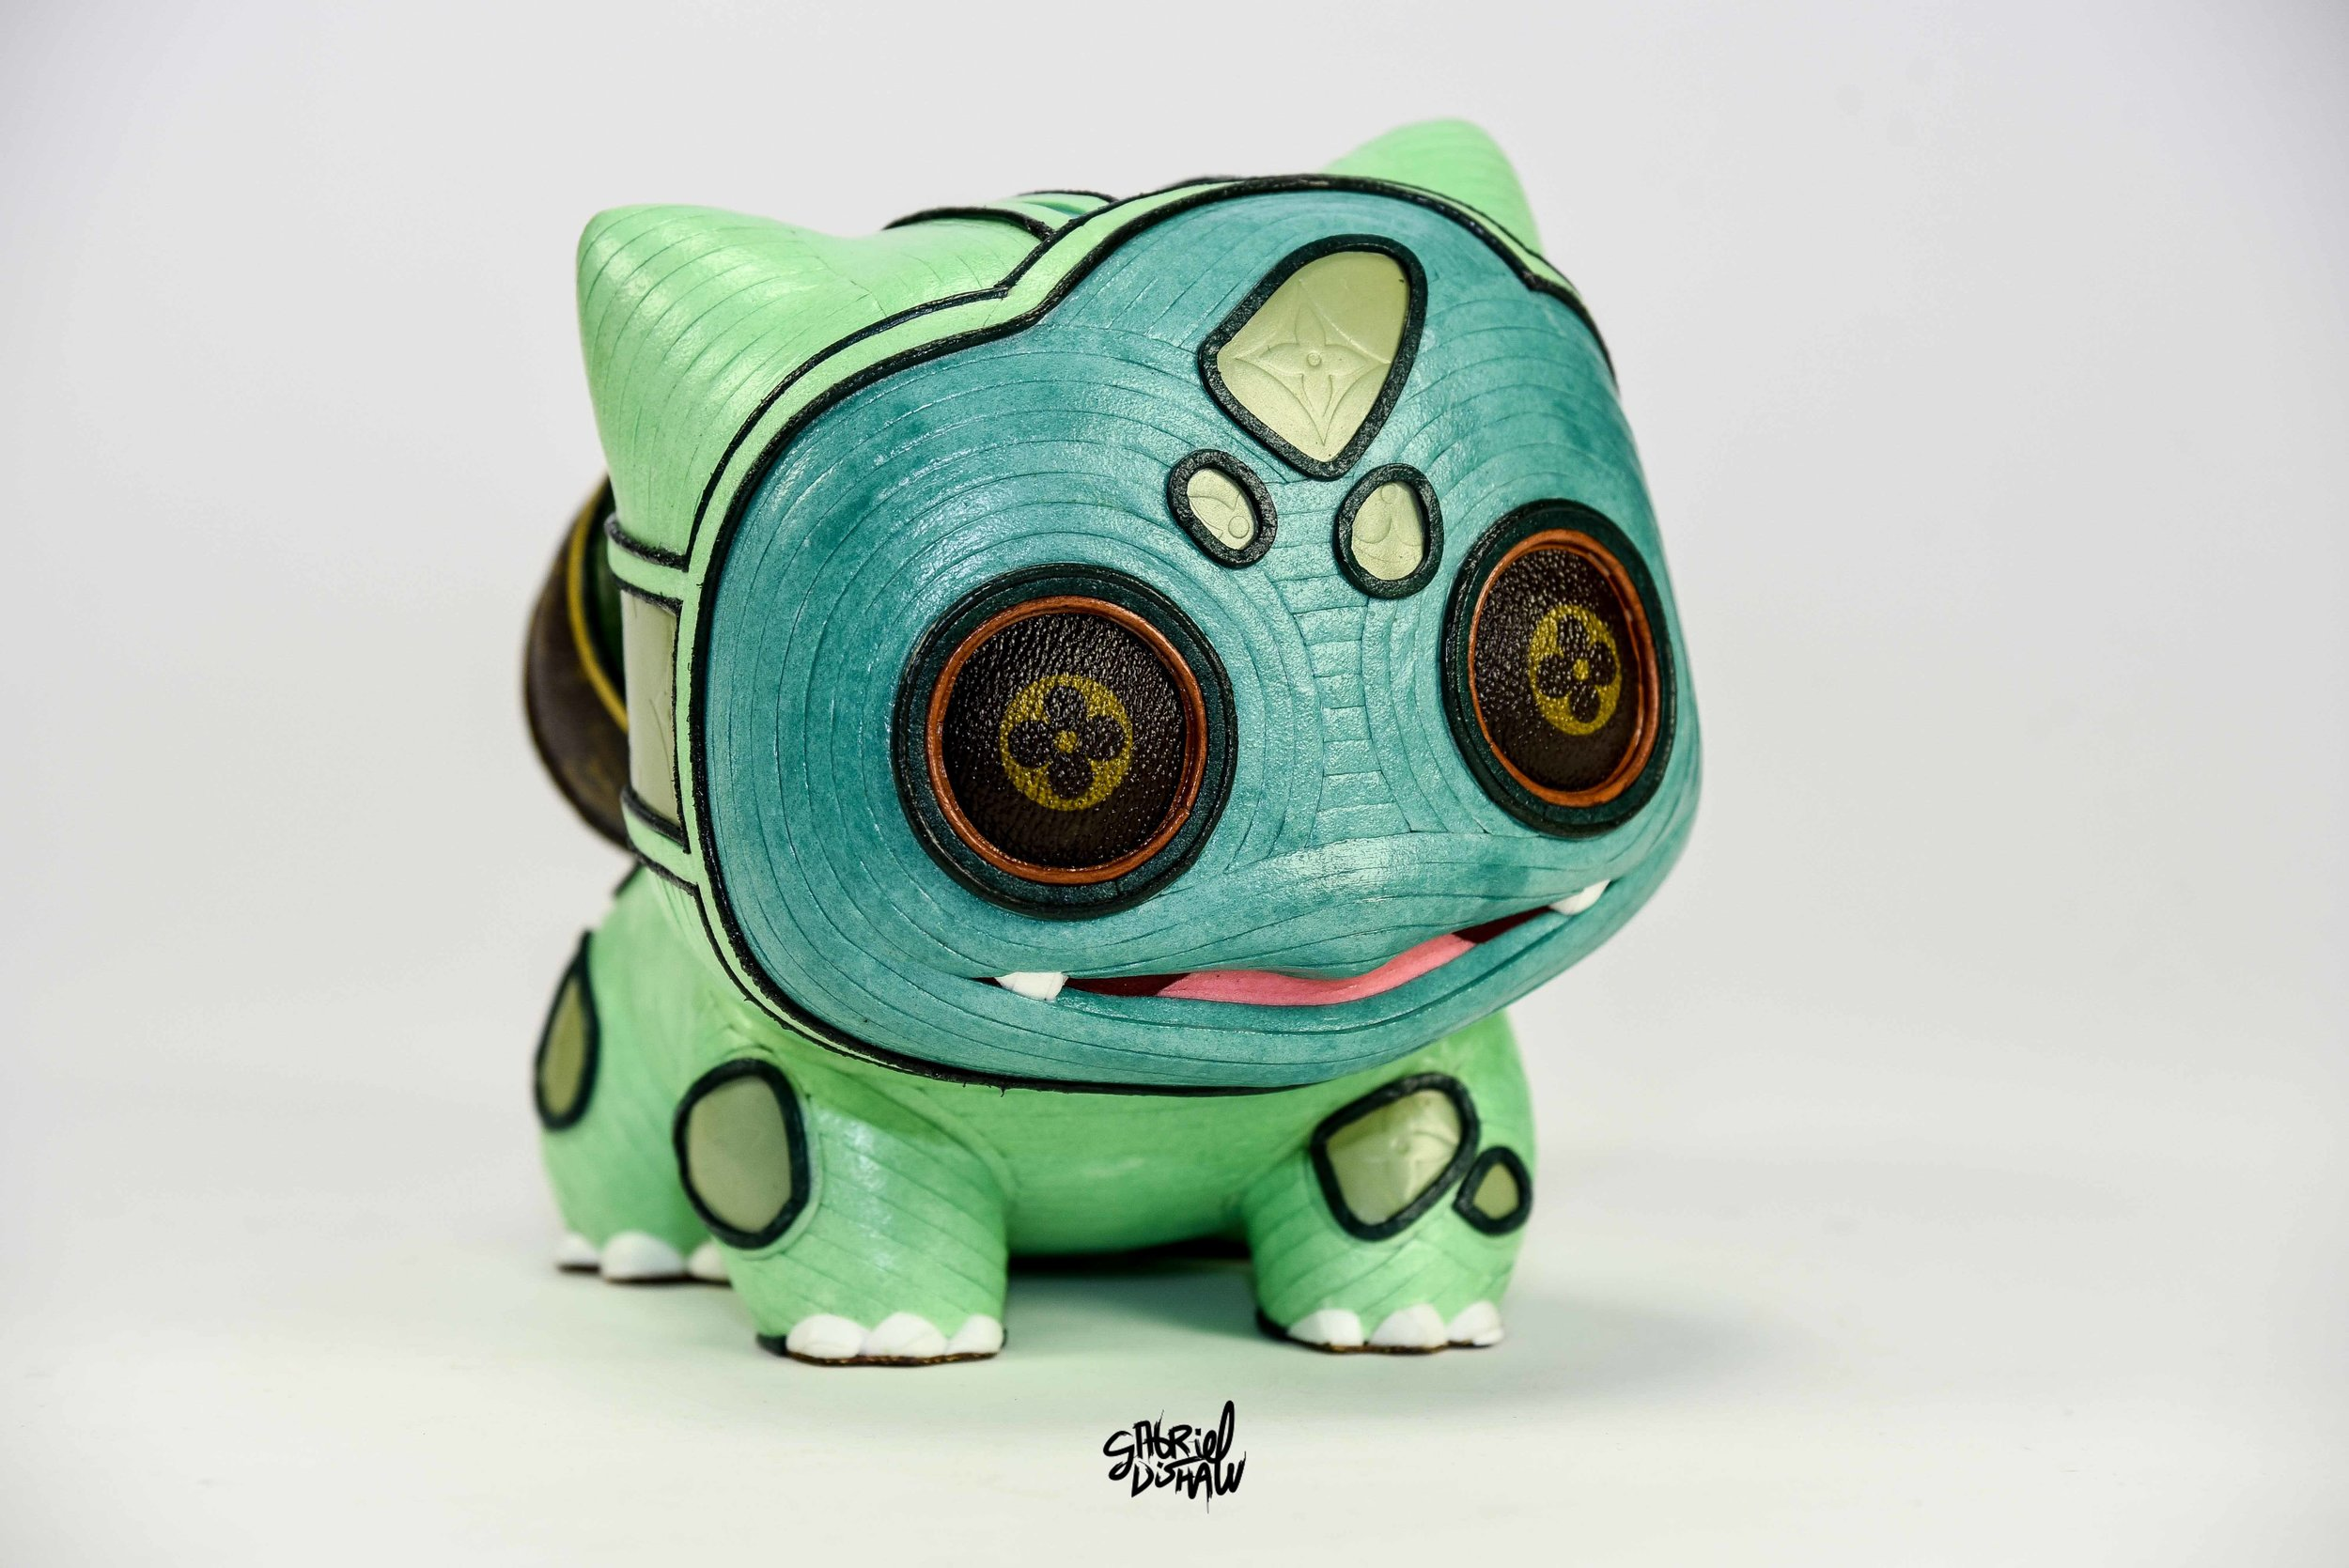 Gabriel Dishaw Bulbasaur LV (65 of 107).jpg